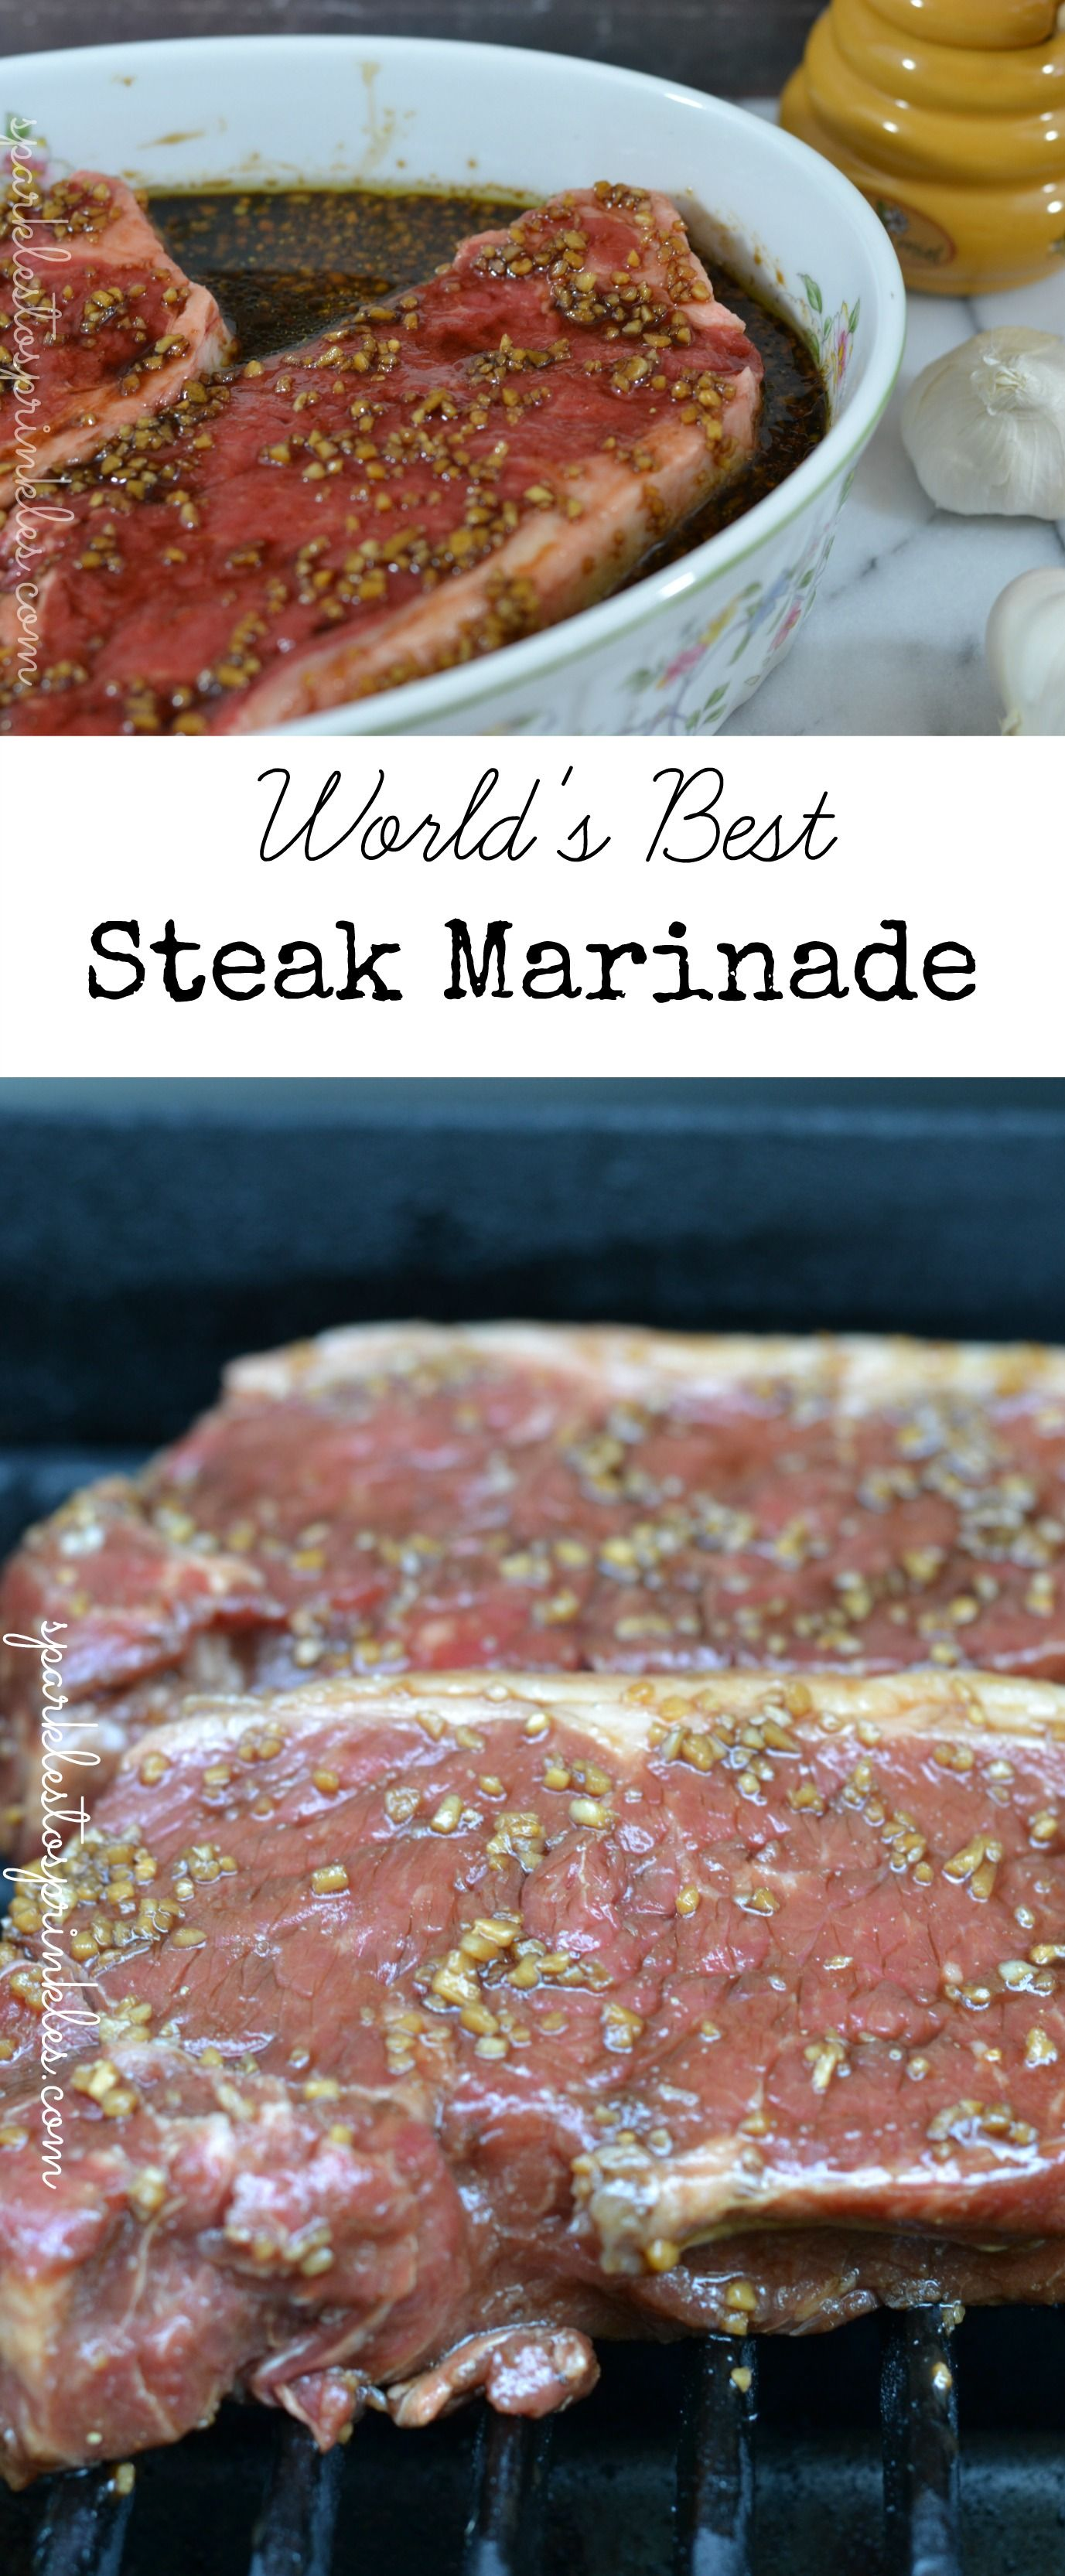 Worlds Best Steak Marinade Recipe Recipes Frugal Navy Wife Segiempat Shabby Chic Sj0004 When I Say Really Mean This Is So Delicious That You Will Make It For Years And To Come